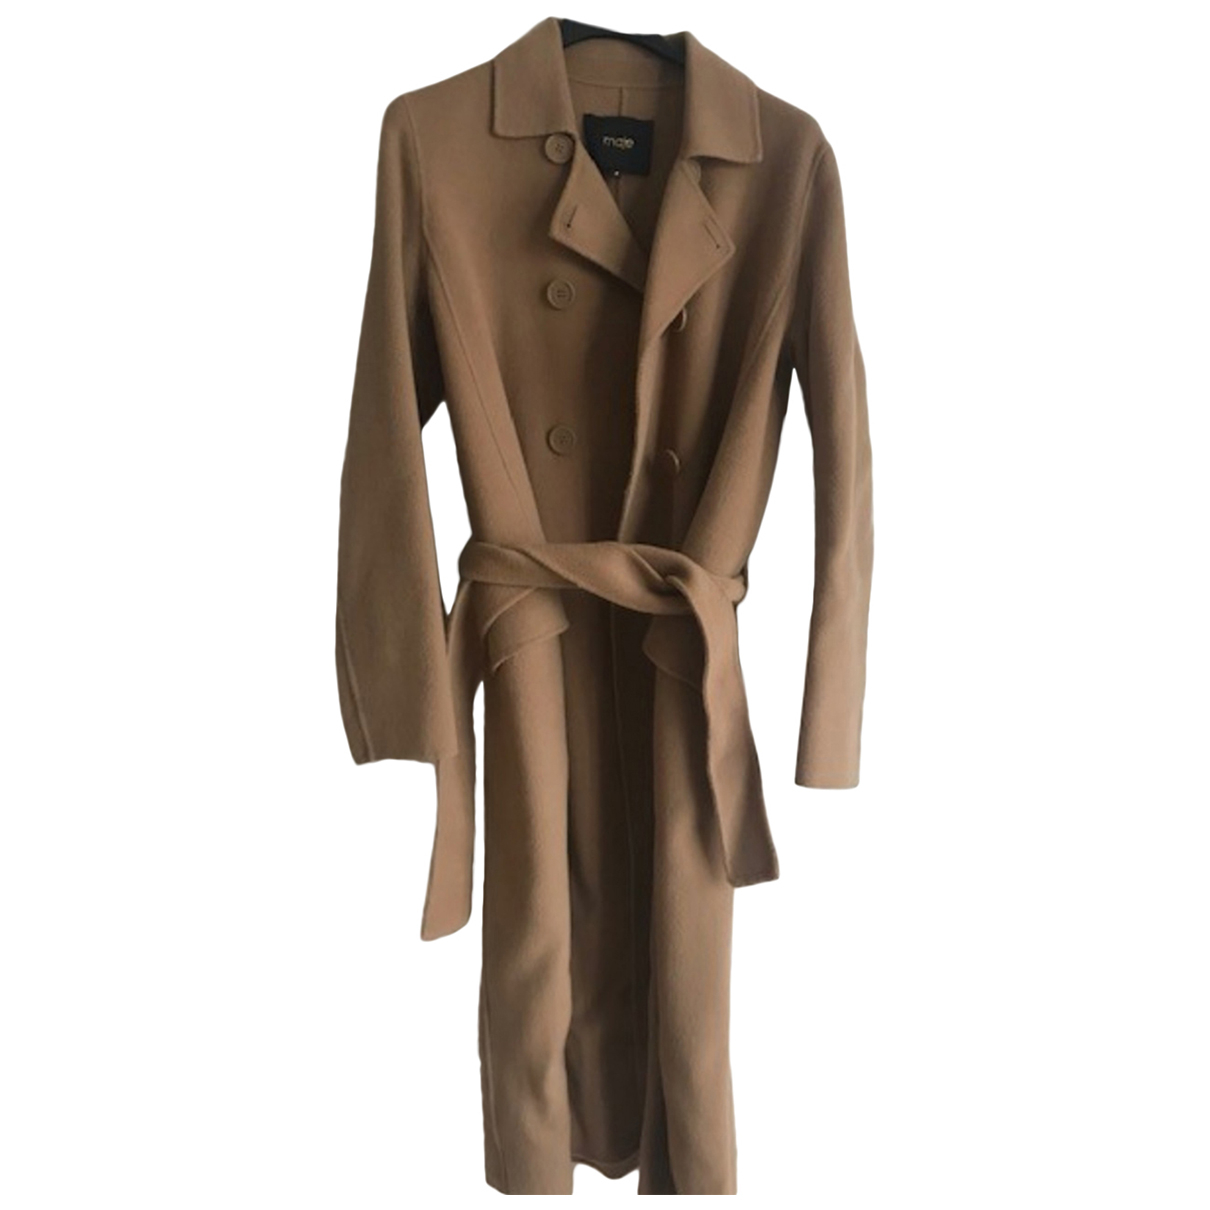 Maje \N Camel Wool coat for Women M International